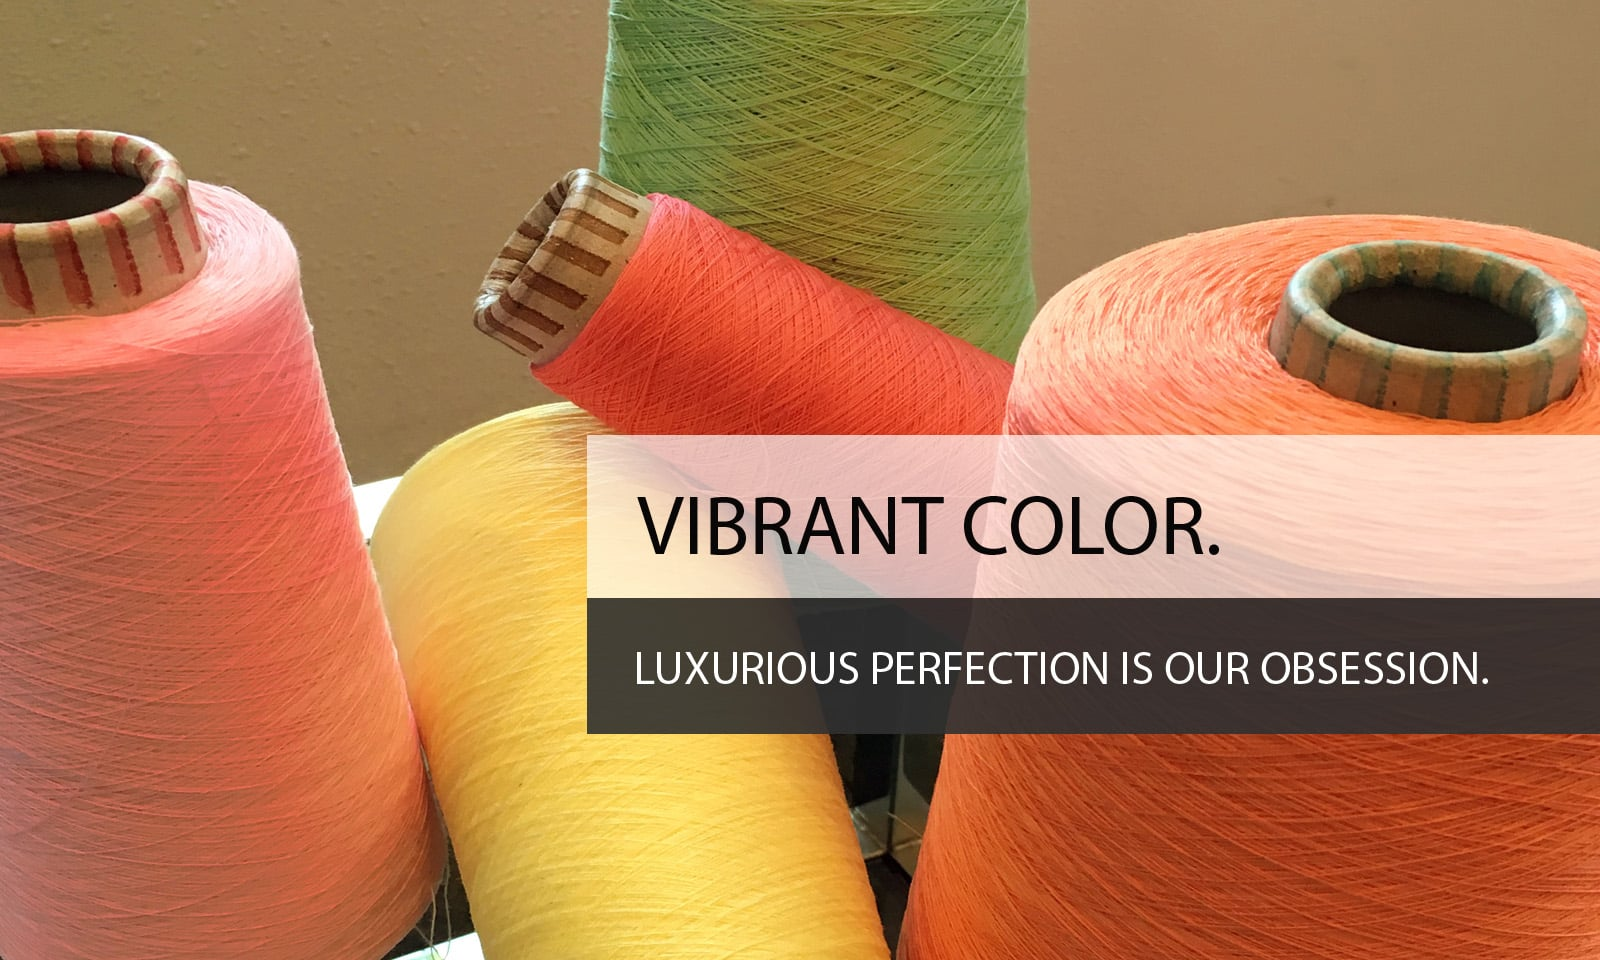 Vibrant Color. Luxurious perfection is our obsession.